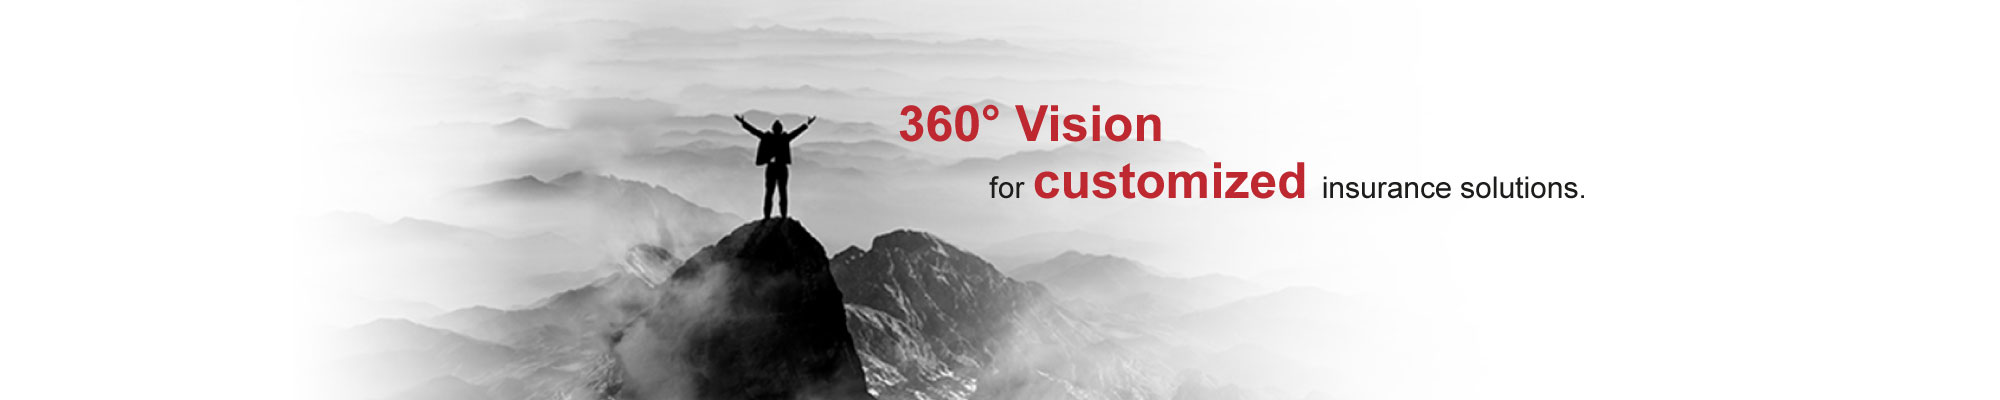 360 degree vision for customized insurance solutions.